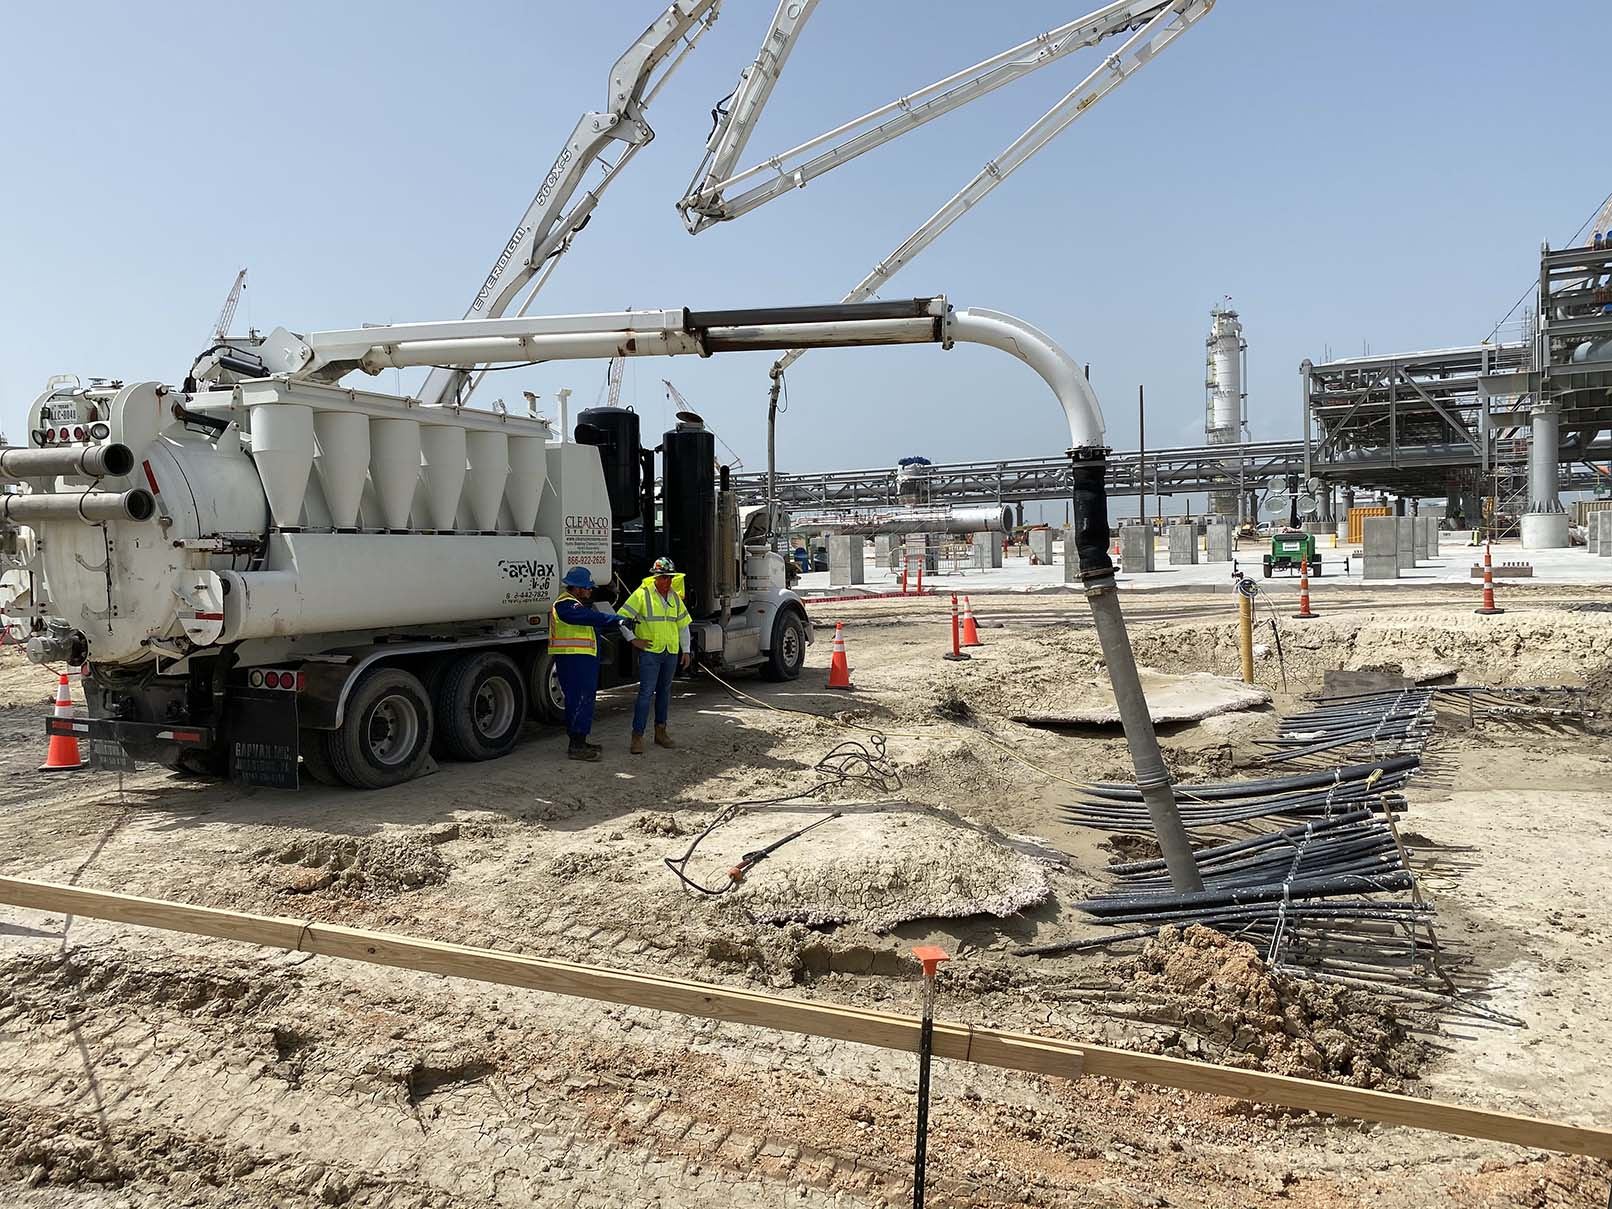 Clean Co Hydro Excavation Services at Exxon's Corpus Chirsti Ethelyne Cracker Facility